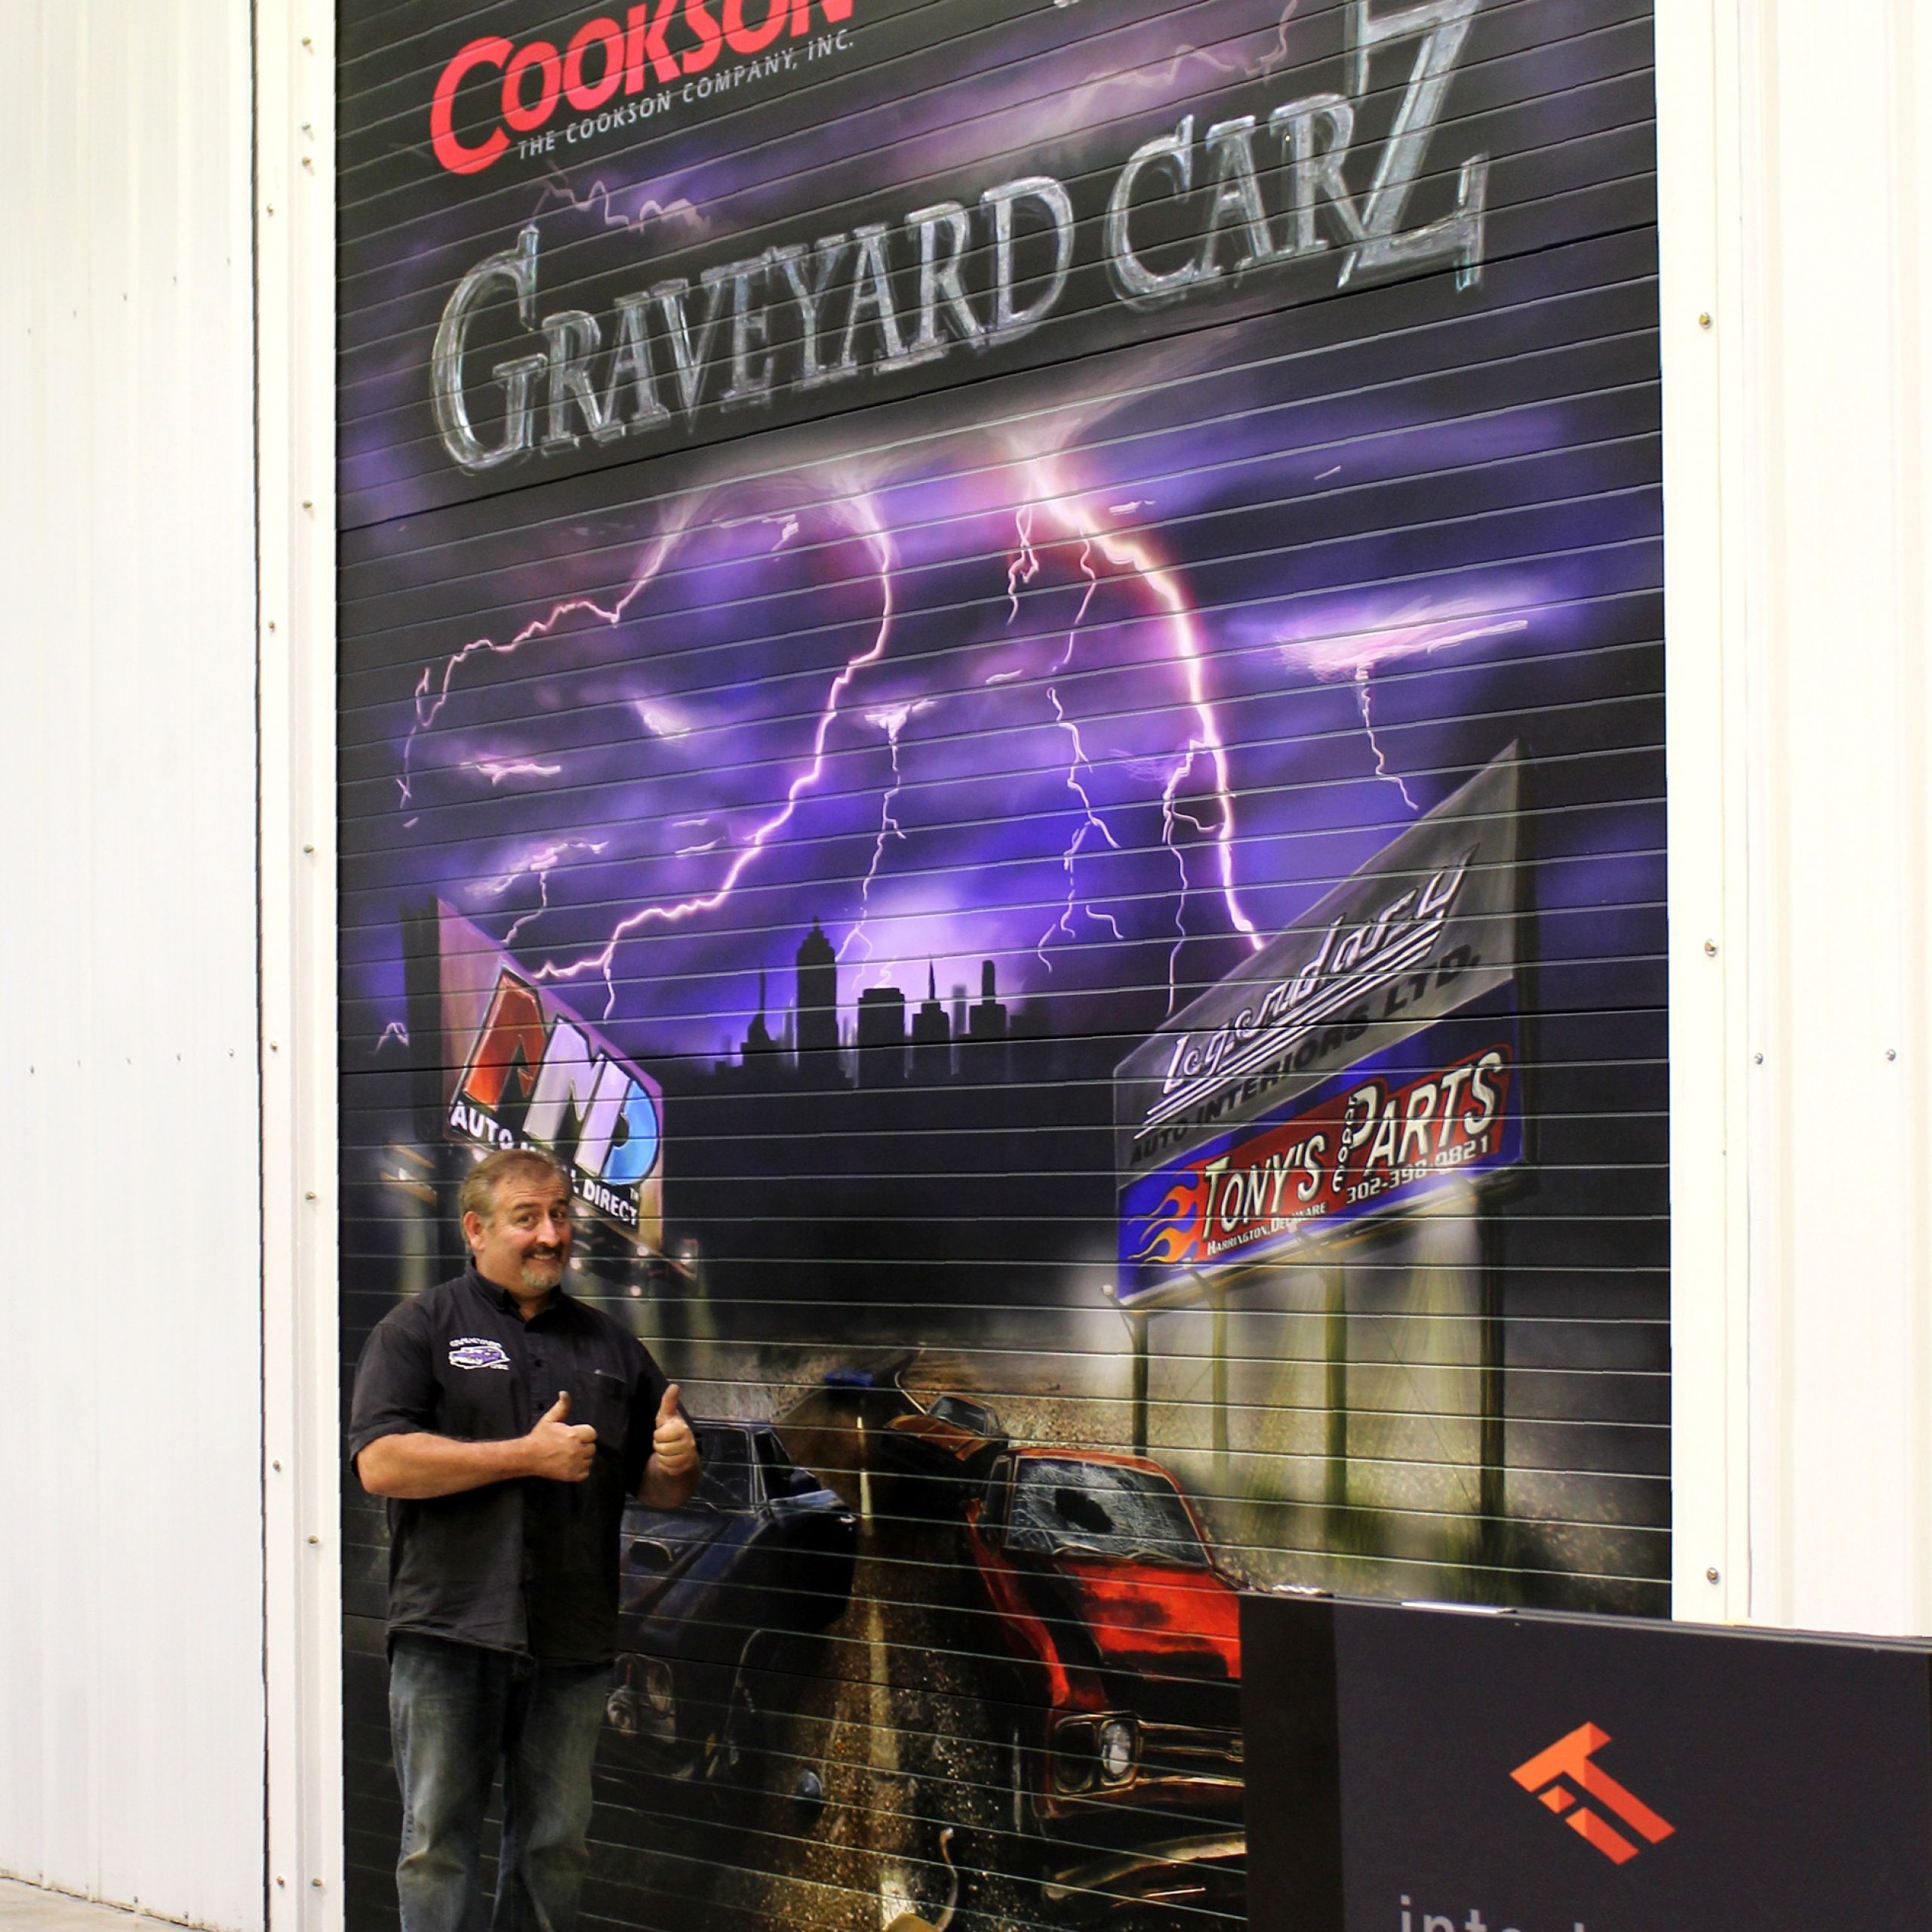 Where is Graveyard Carz Located Awesome Graveyard Carz